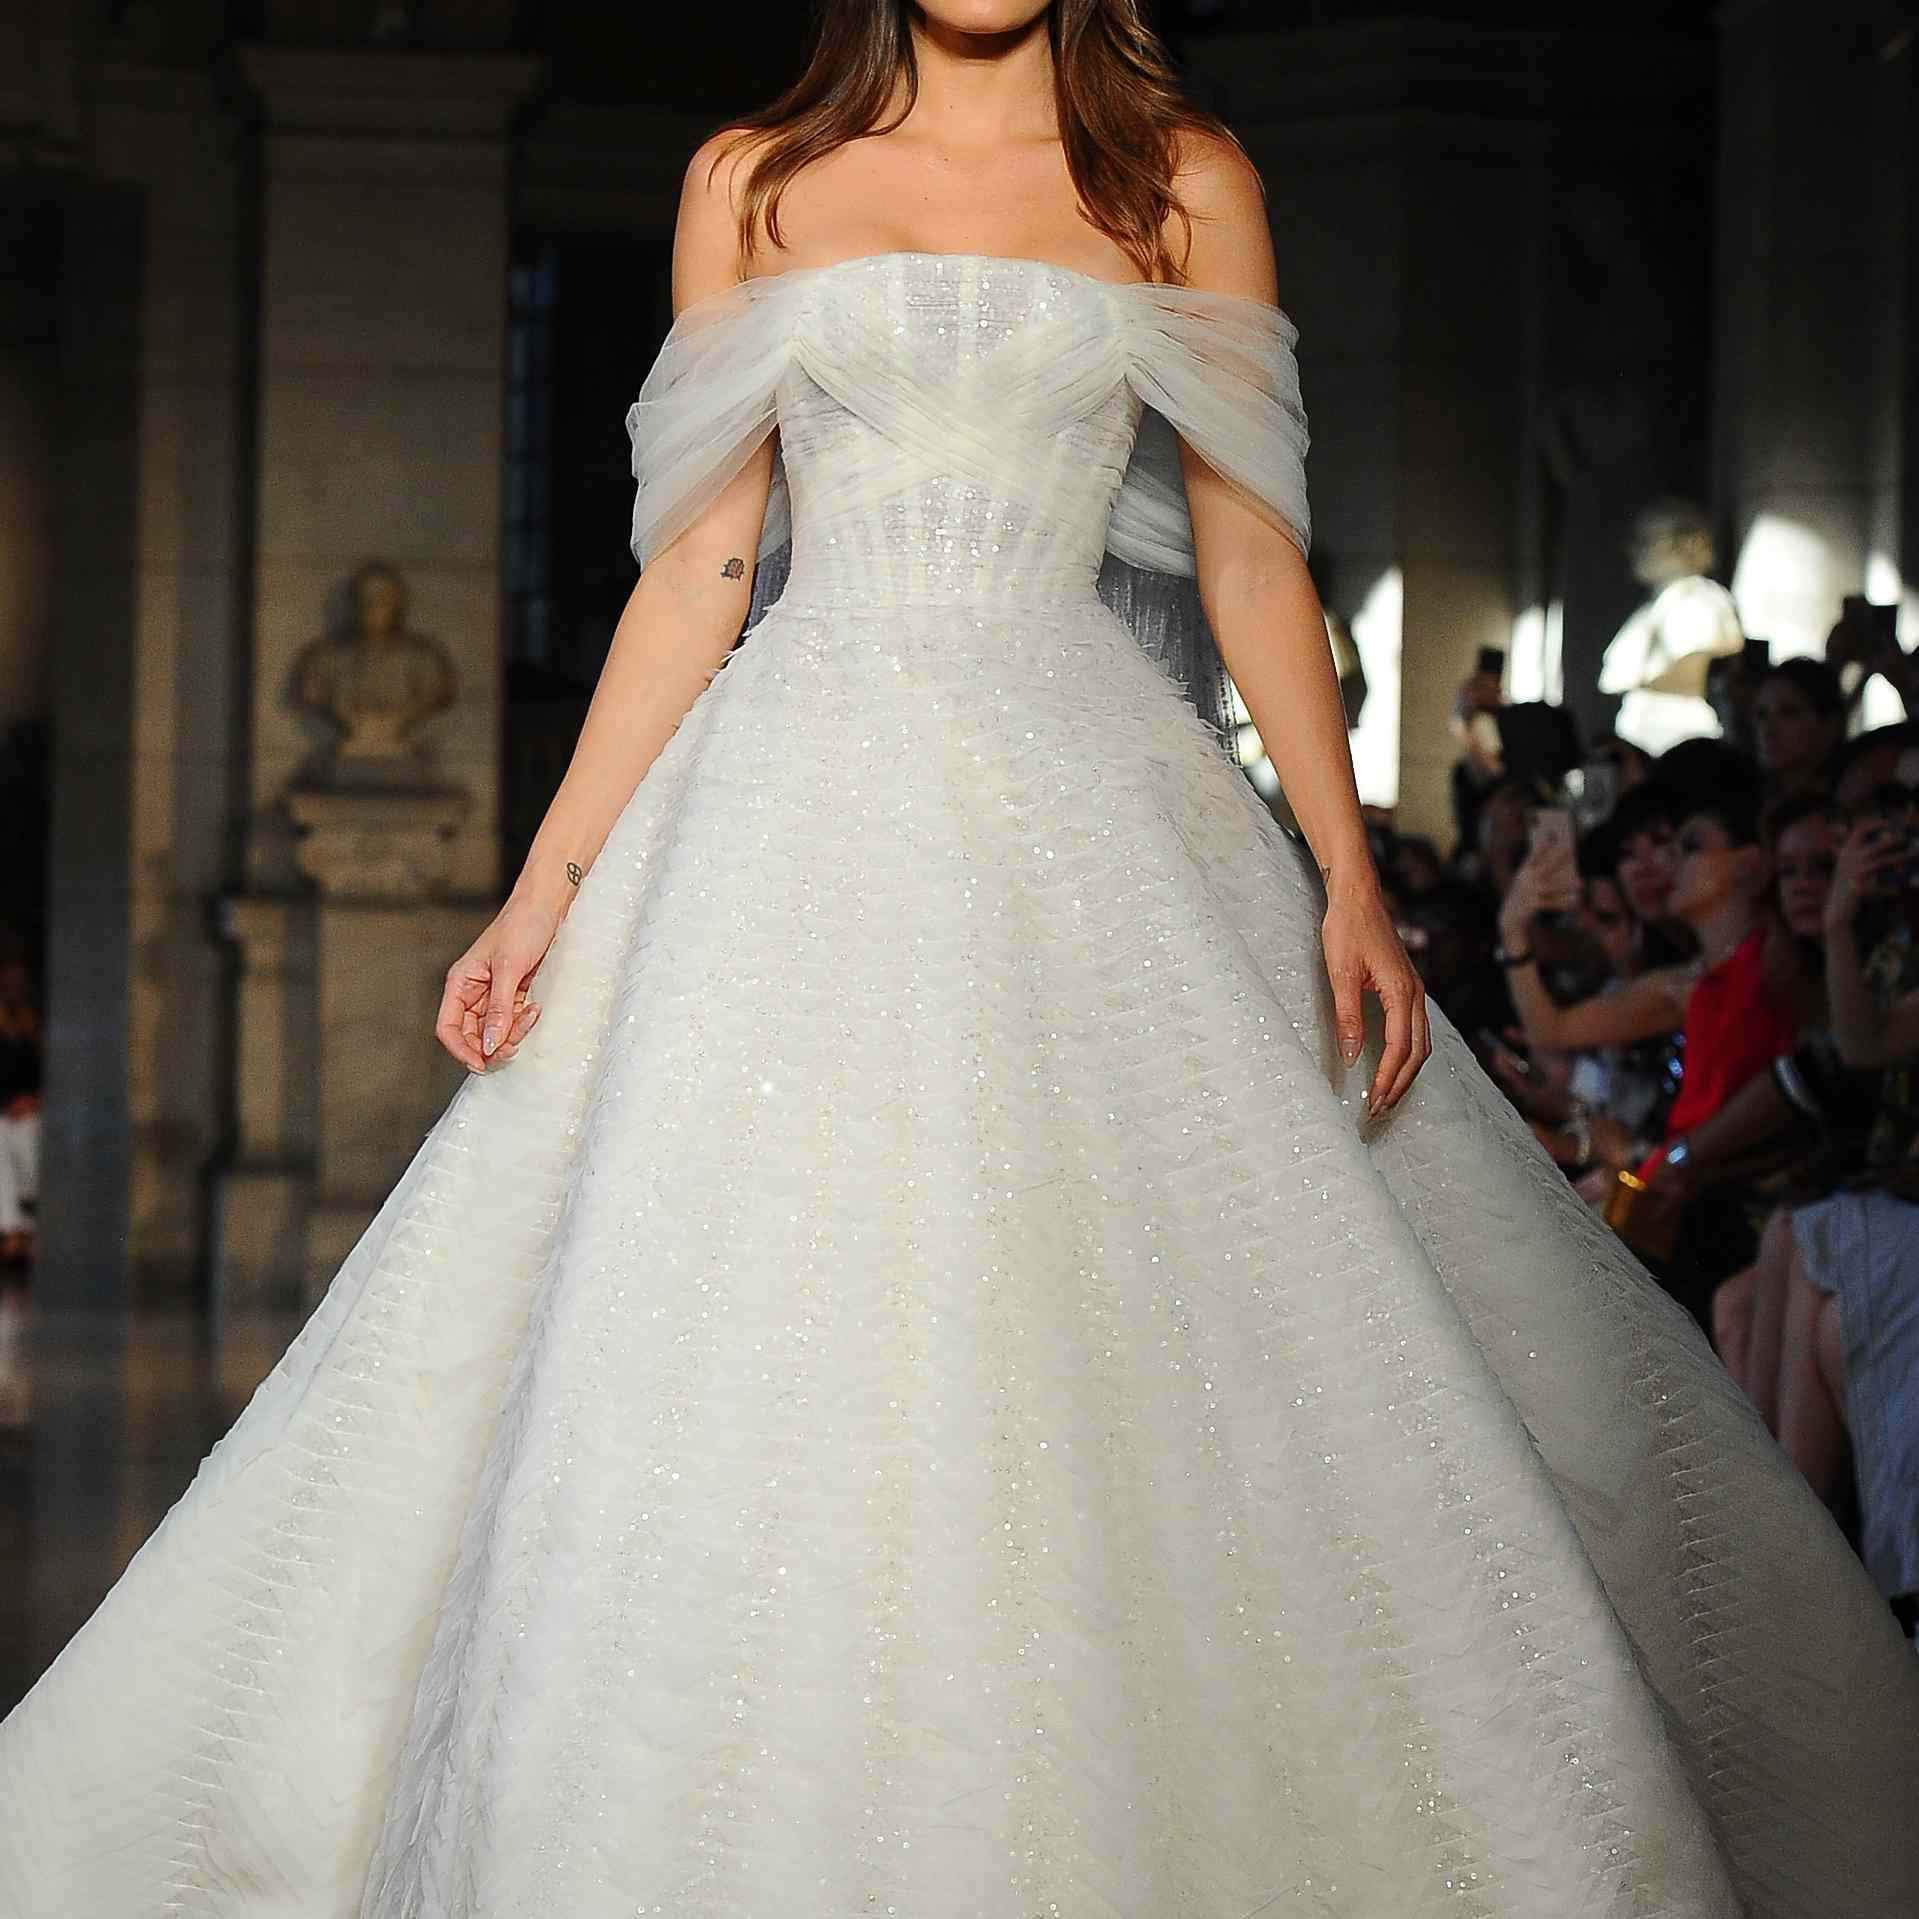 A model walks the runway in off-the-shoulder princess wedding gown